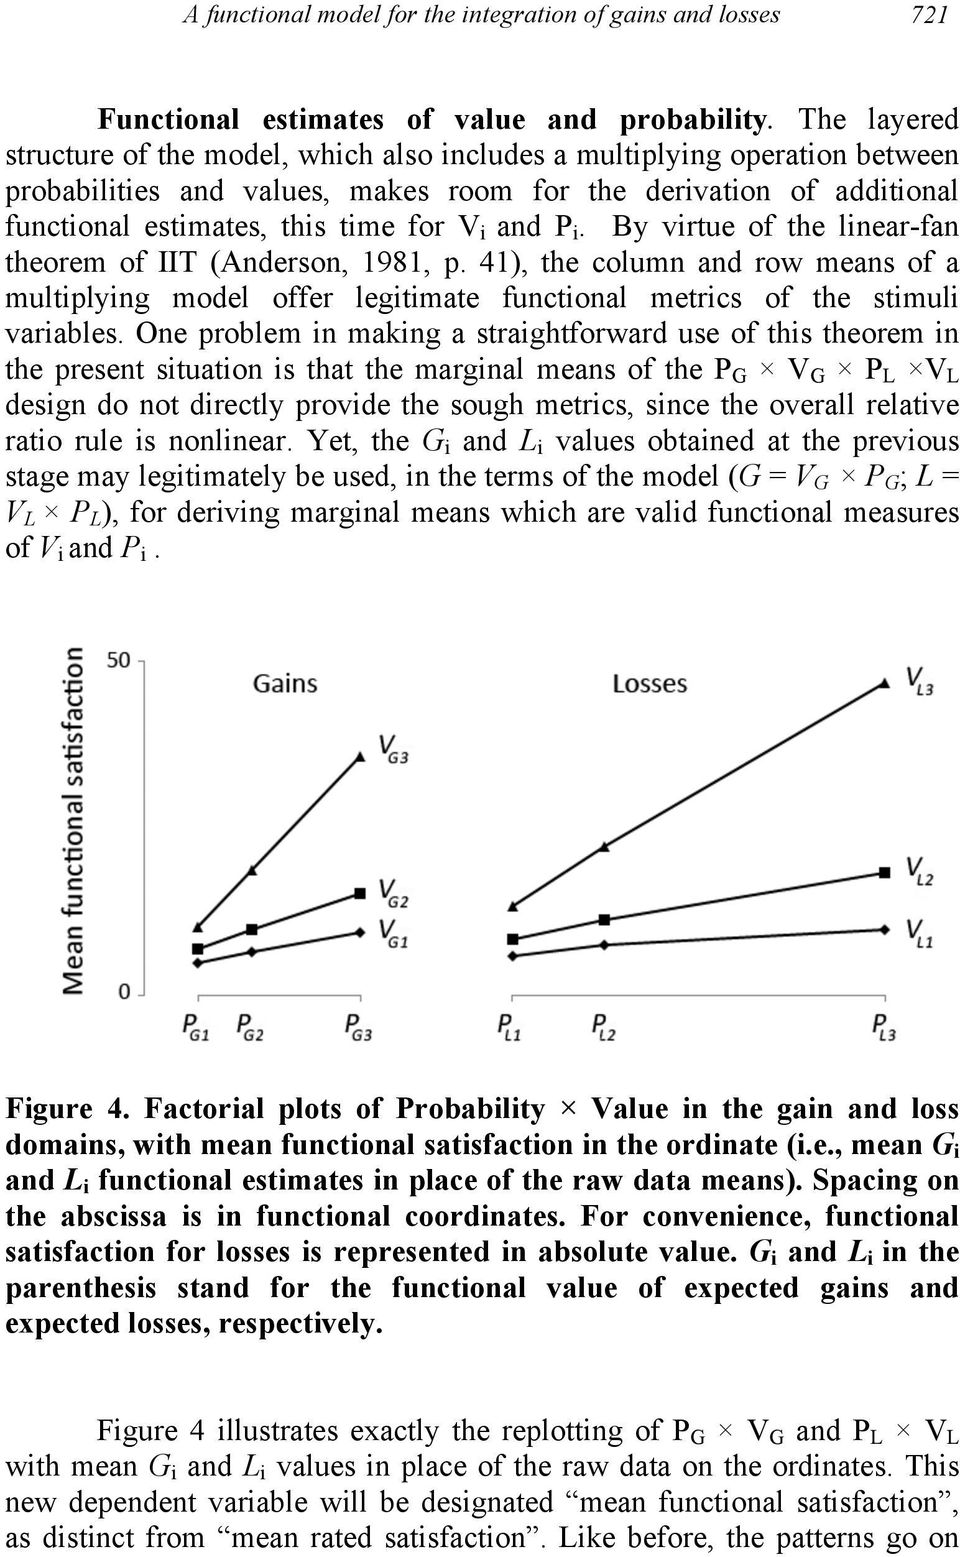 and P i. By virtue of the linear-fan theorem of IIT (Anderson, 1981, p. 41), the column and row means of a multiplying model offer legitimate functional metrics of the stimuli variables.